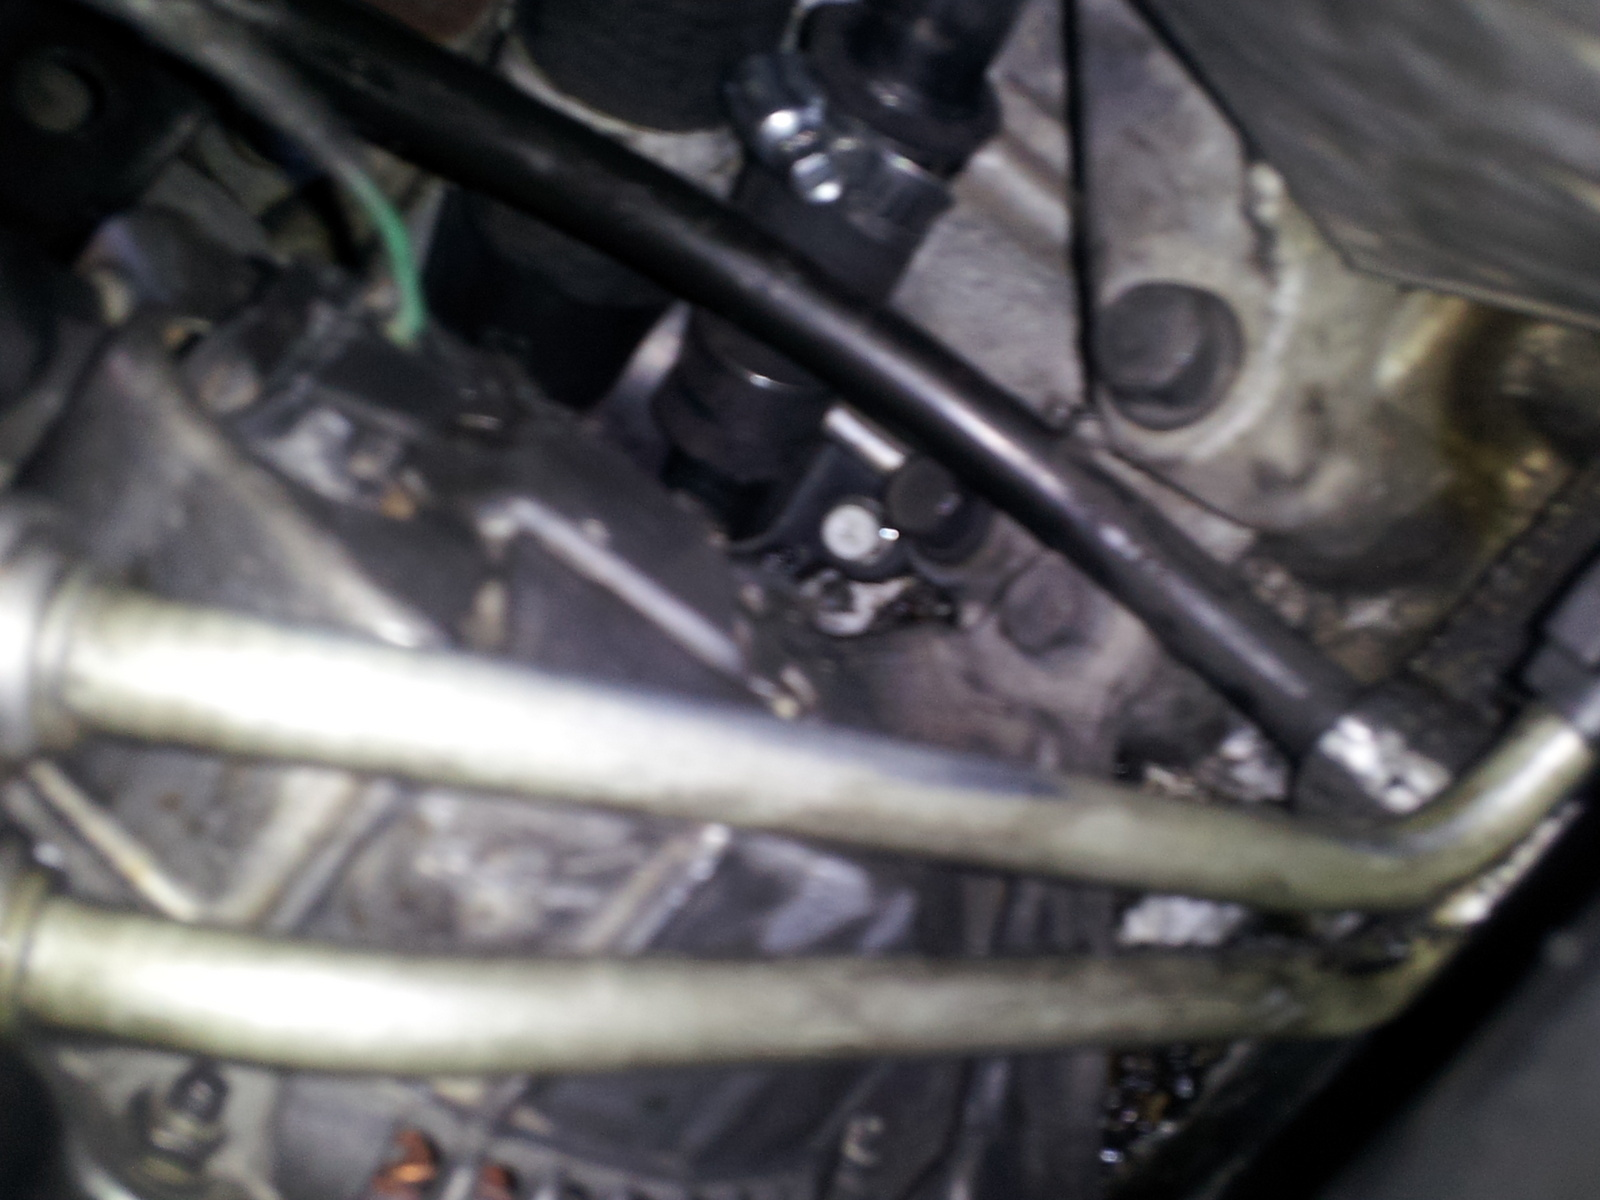 Dodge Intrepid Questions 27 Engine Have A Little Hole That Keeps 1999 Mustang 3 8 Fuel Line Diagram Leaking Coolant From The Motor Its Not Cracked And There Is No Grooves So Screw Missing We Think It Might